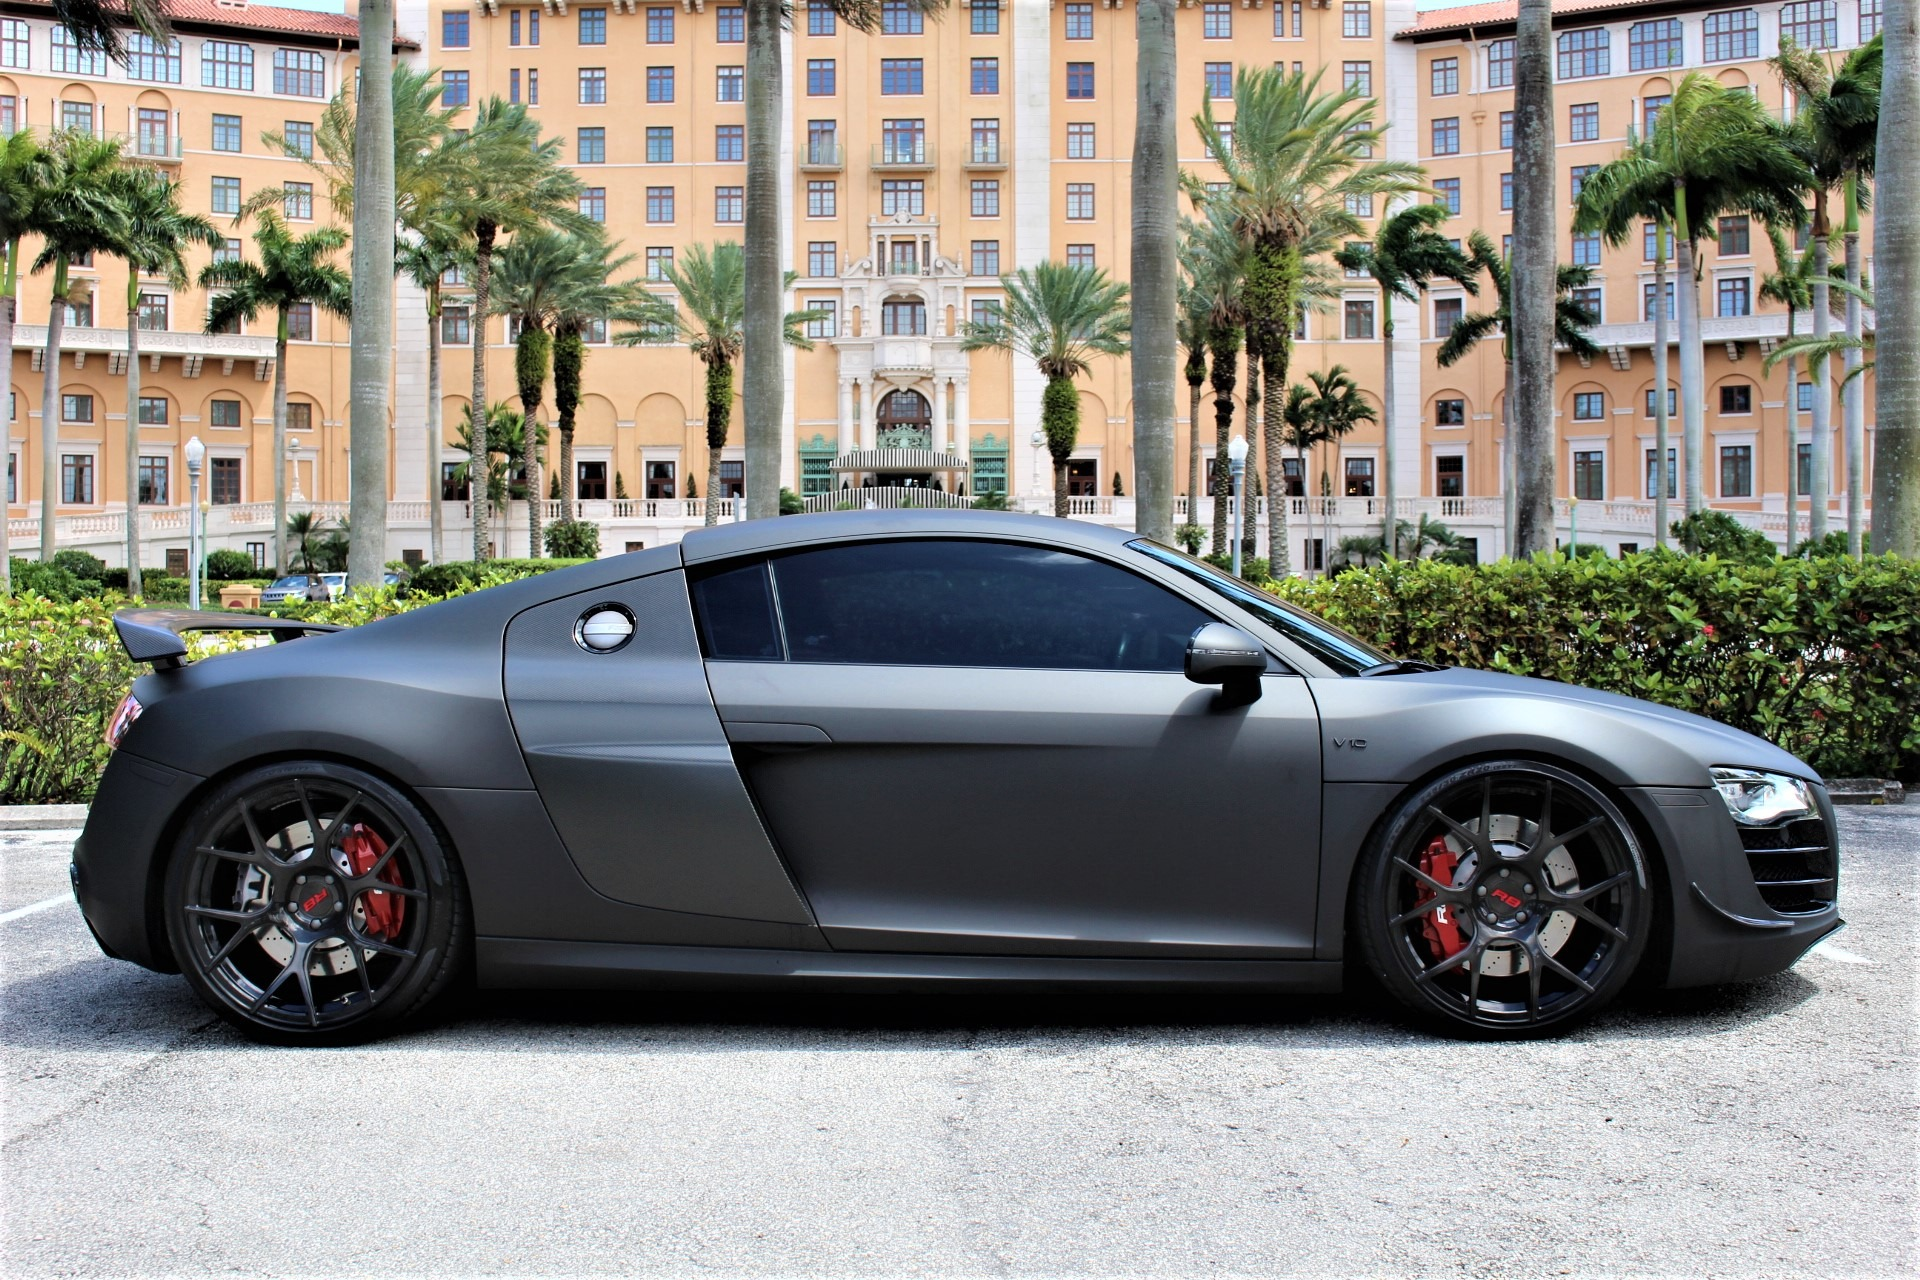 Used 2012 Audi R8 5.2 quattro for sale Sold at The Gables Sports Cars in Miami FL 33146 1